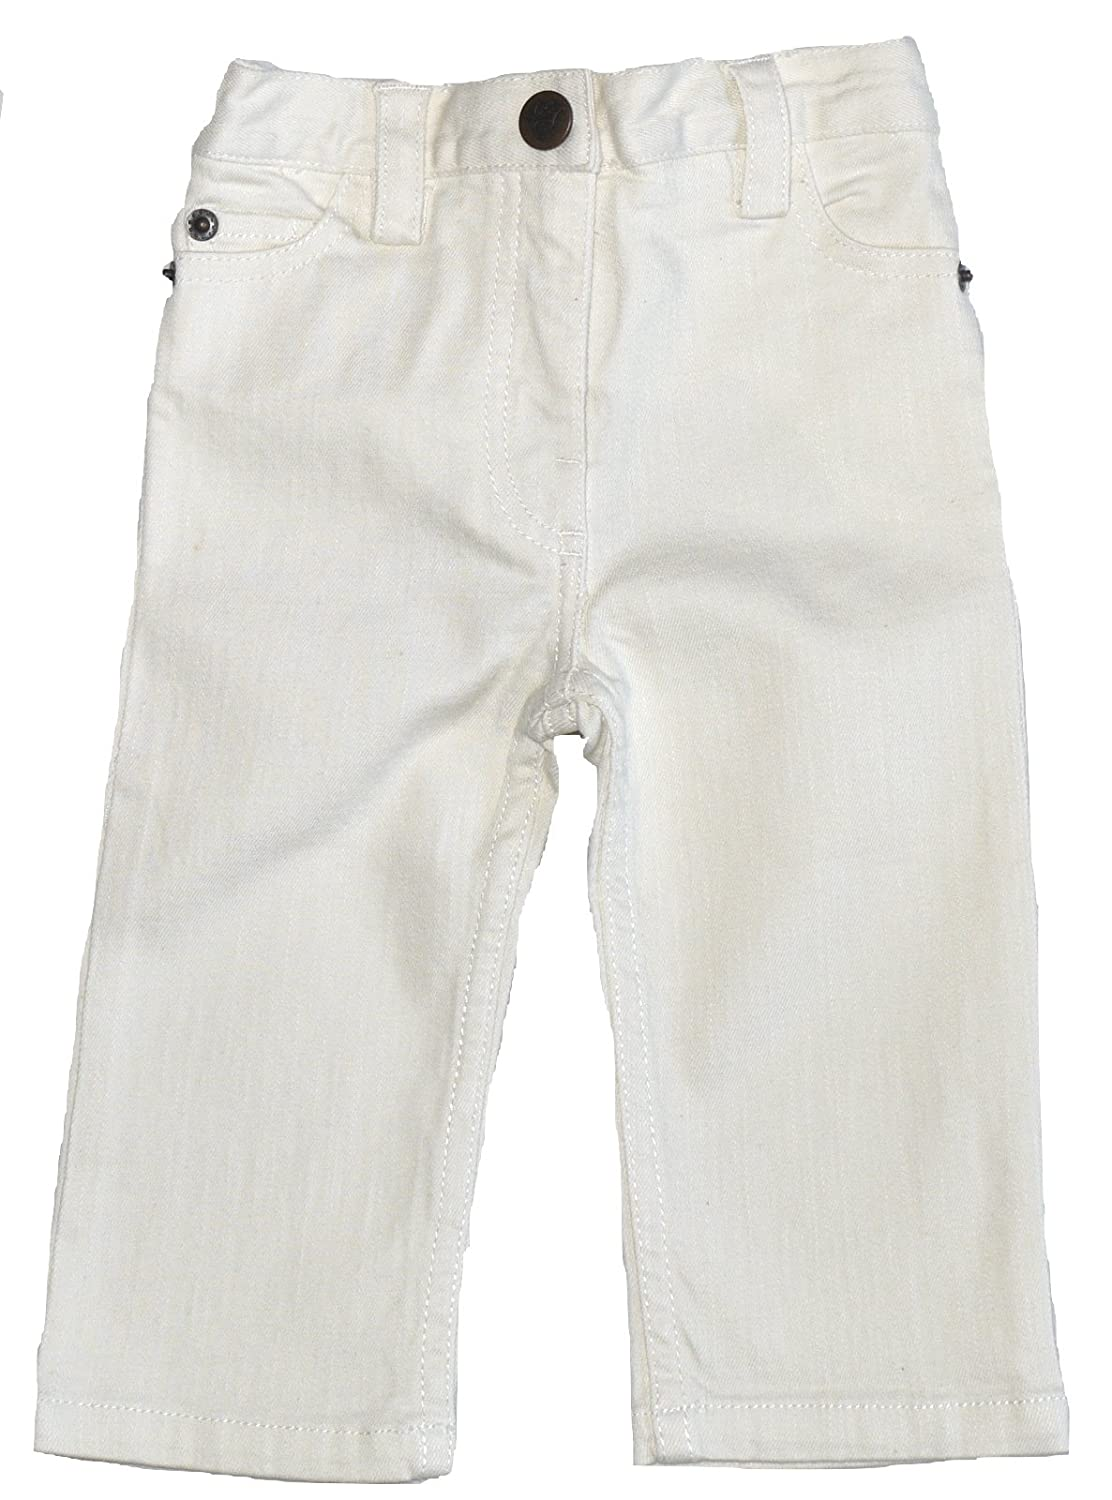 Marie Chantal Designer Baby Jeans